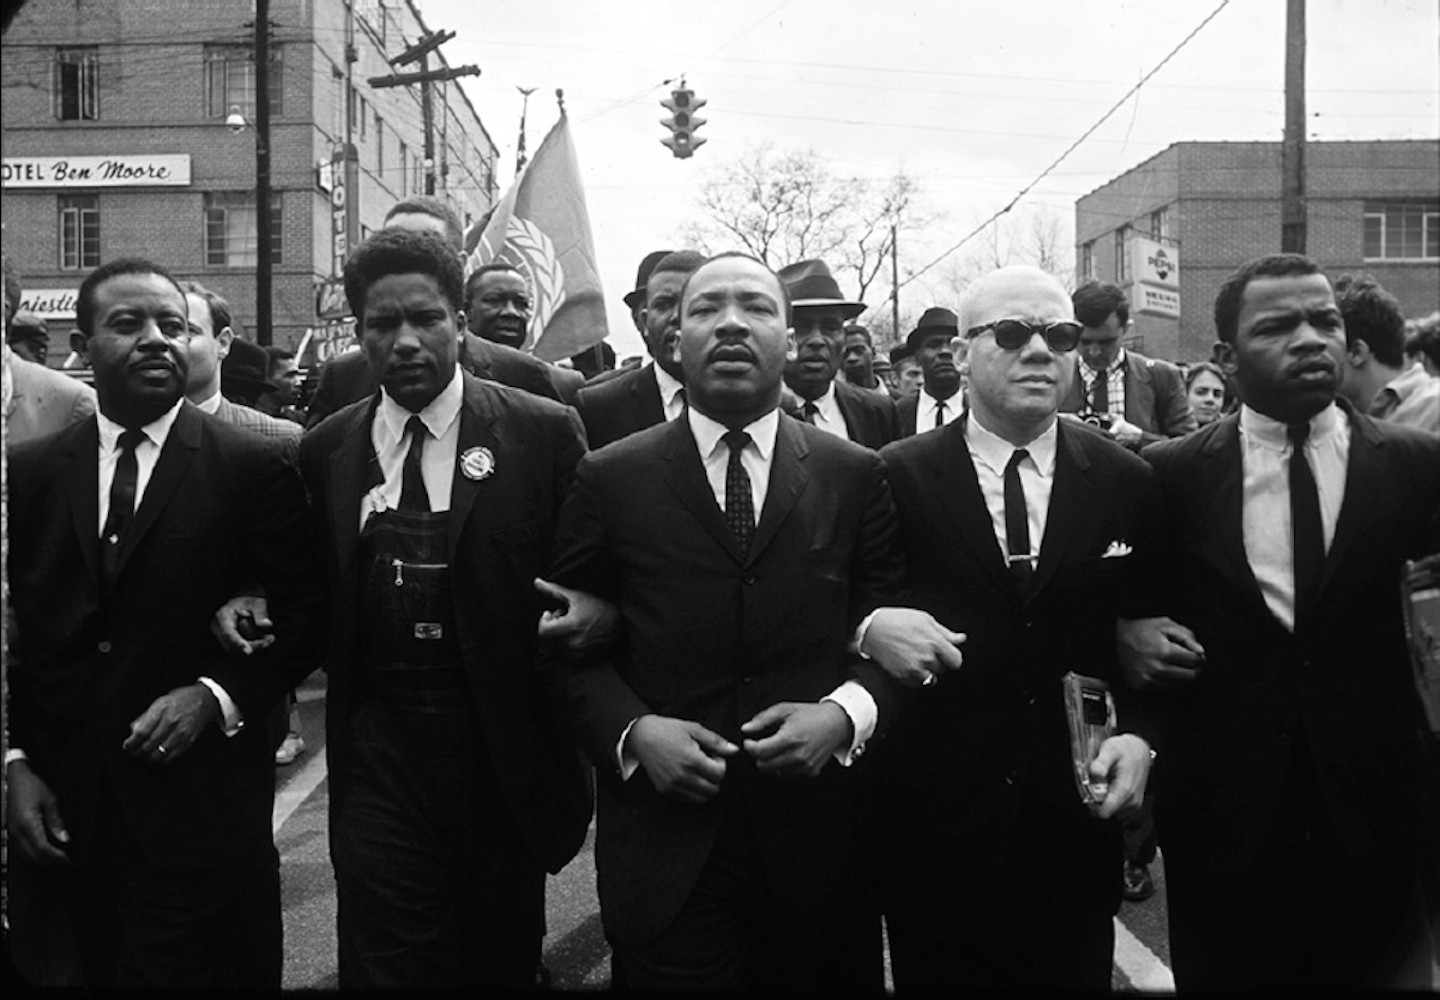 Martin Luther King, Jr., With Group, 1965